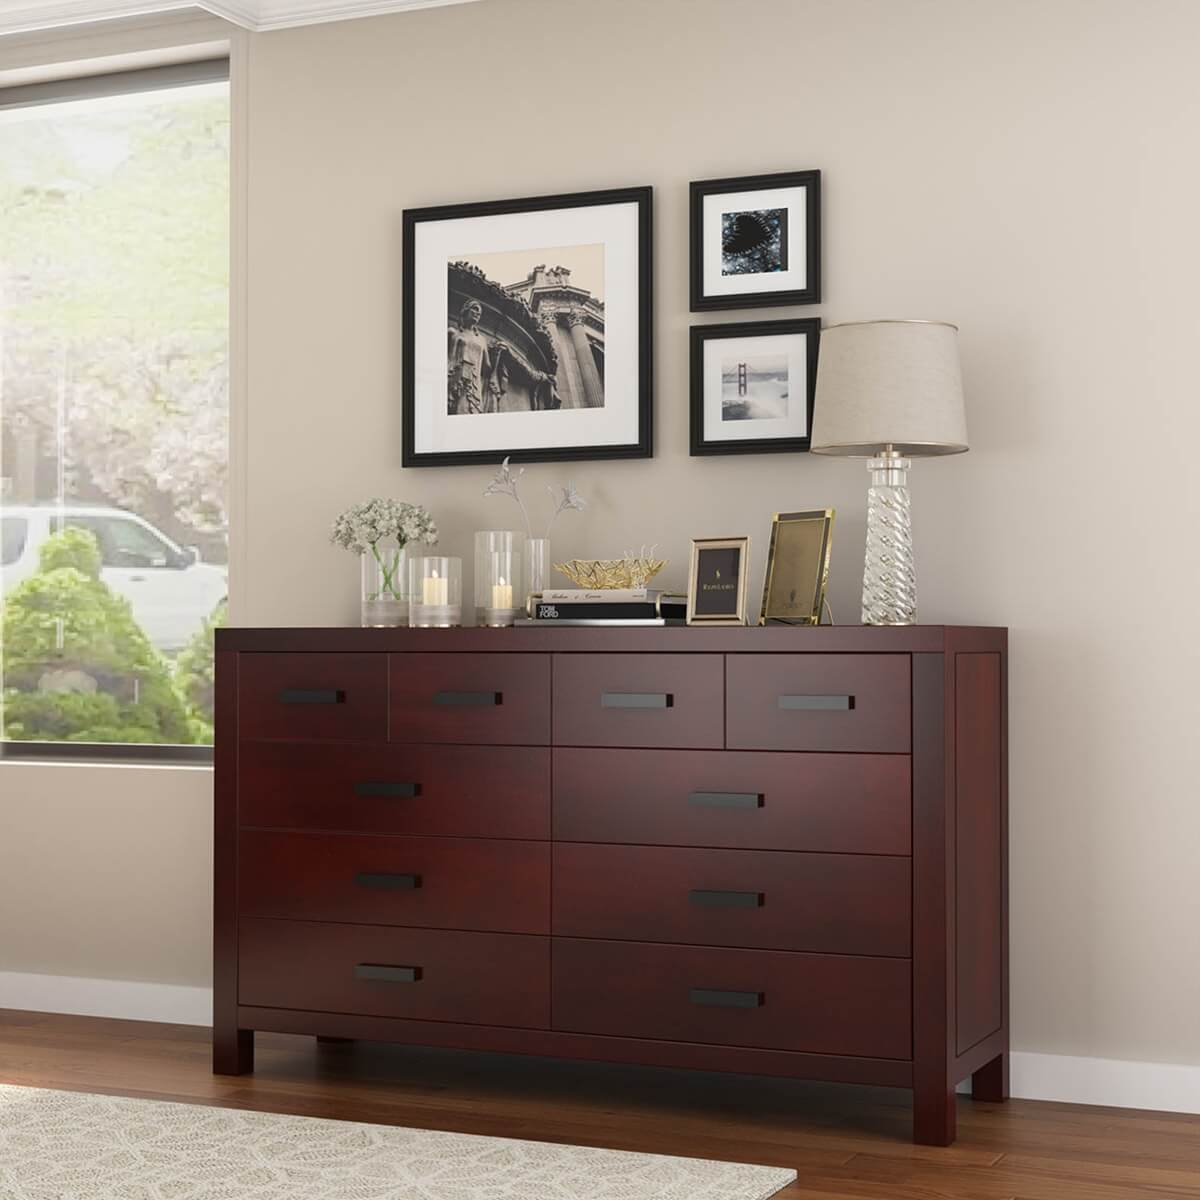 Anniston Transitional Style Mahogany Wood 10 Drawer Double Dresser